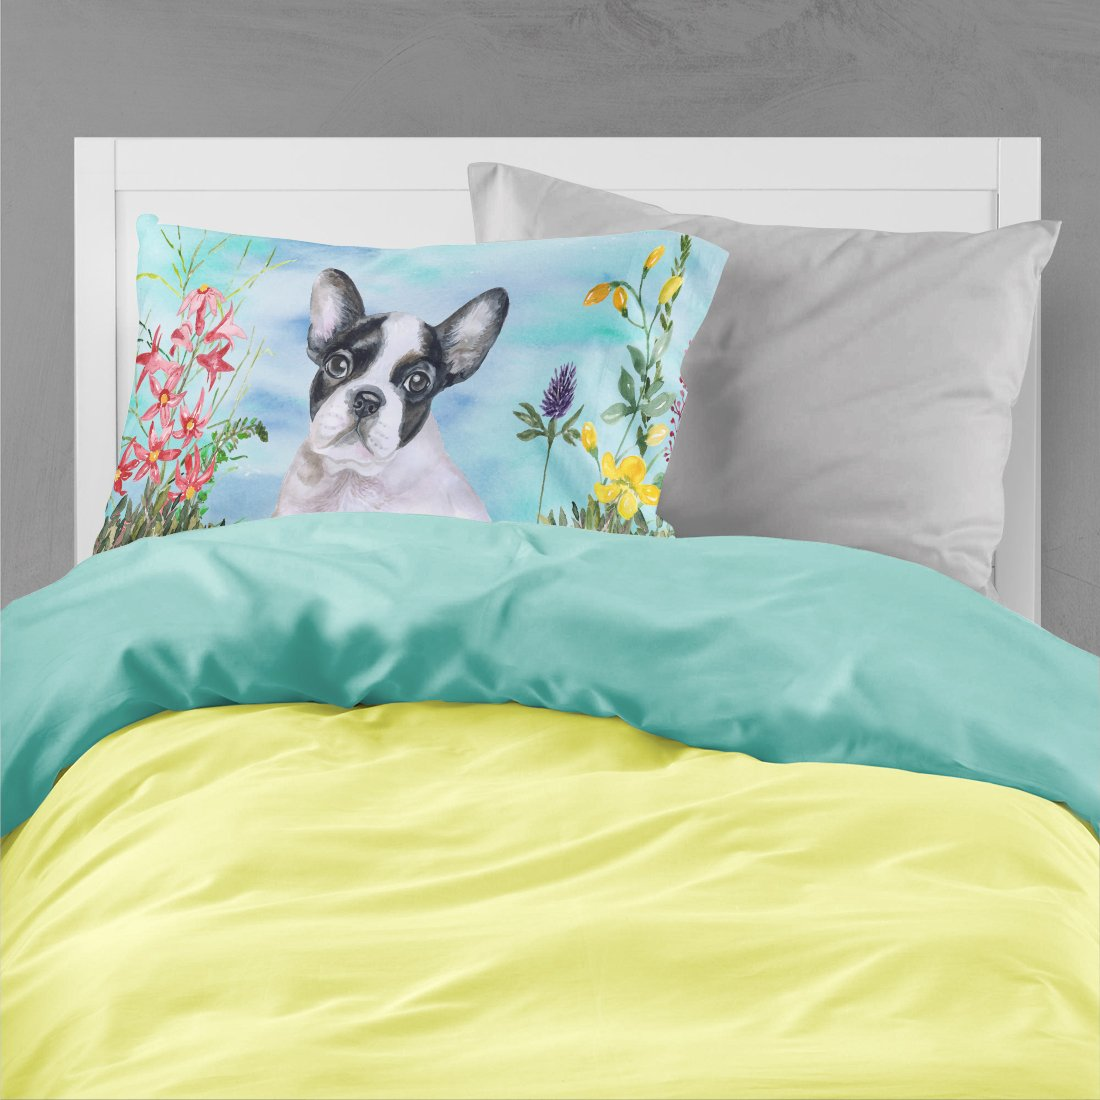 French Bulldog Black White Spring Fabric Standard Pillowcase CK1272PILLOWCASE by Caroline's Treasures